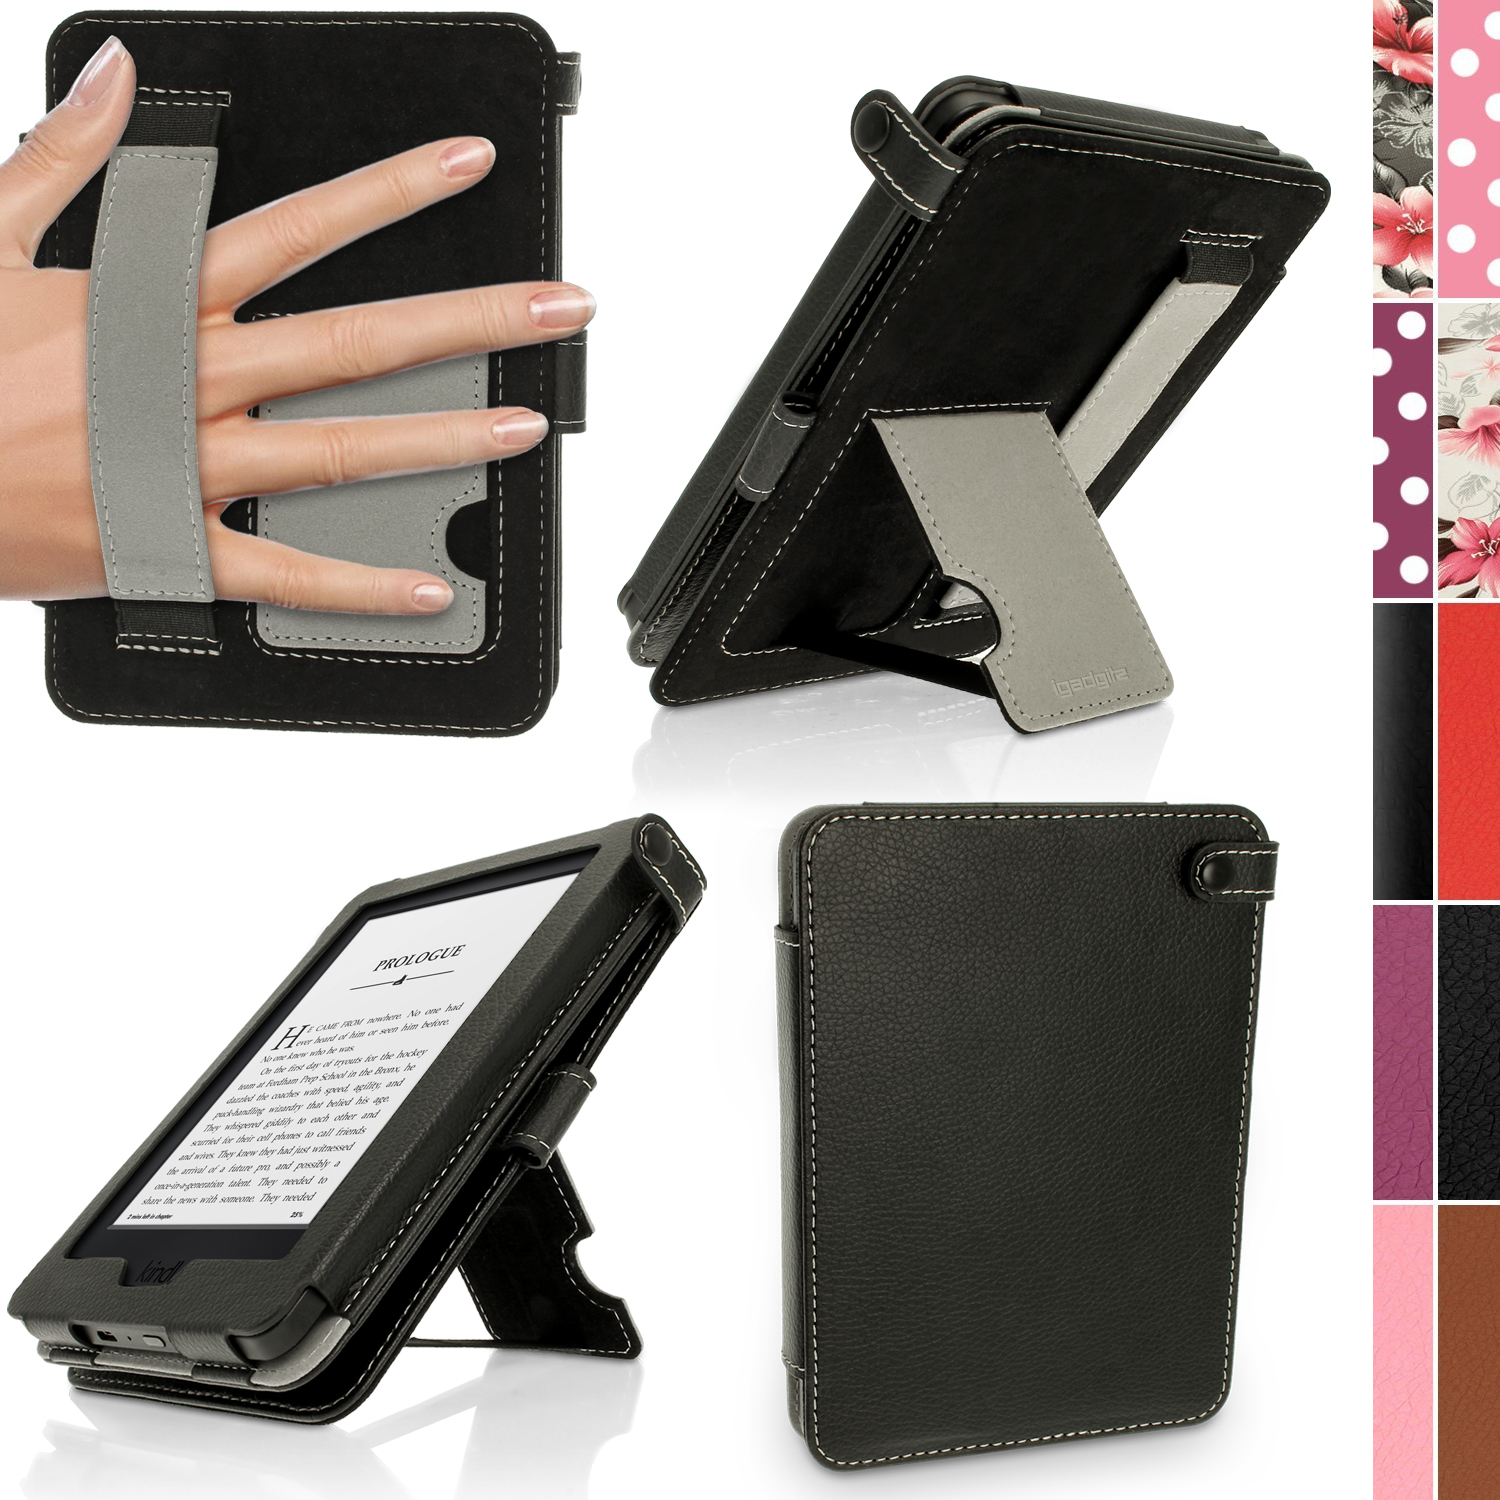 iGadgitz Premium PU Leather Case for Amazon Kindle 2014 (Touchscreen) 7th Gen with Stand + Auto Sleep/Wake + Hand Strap